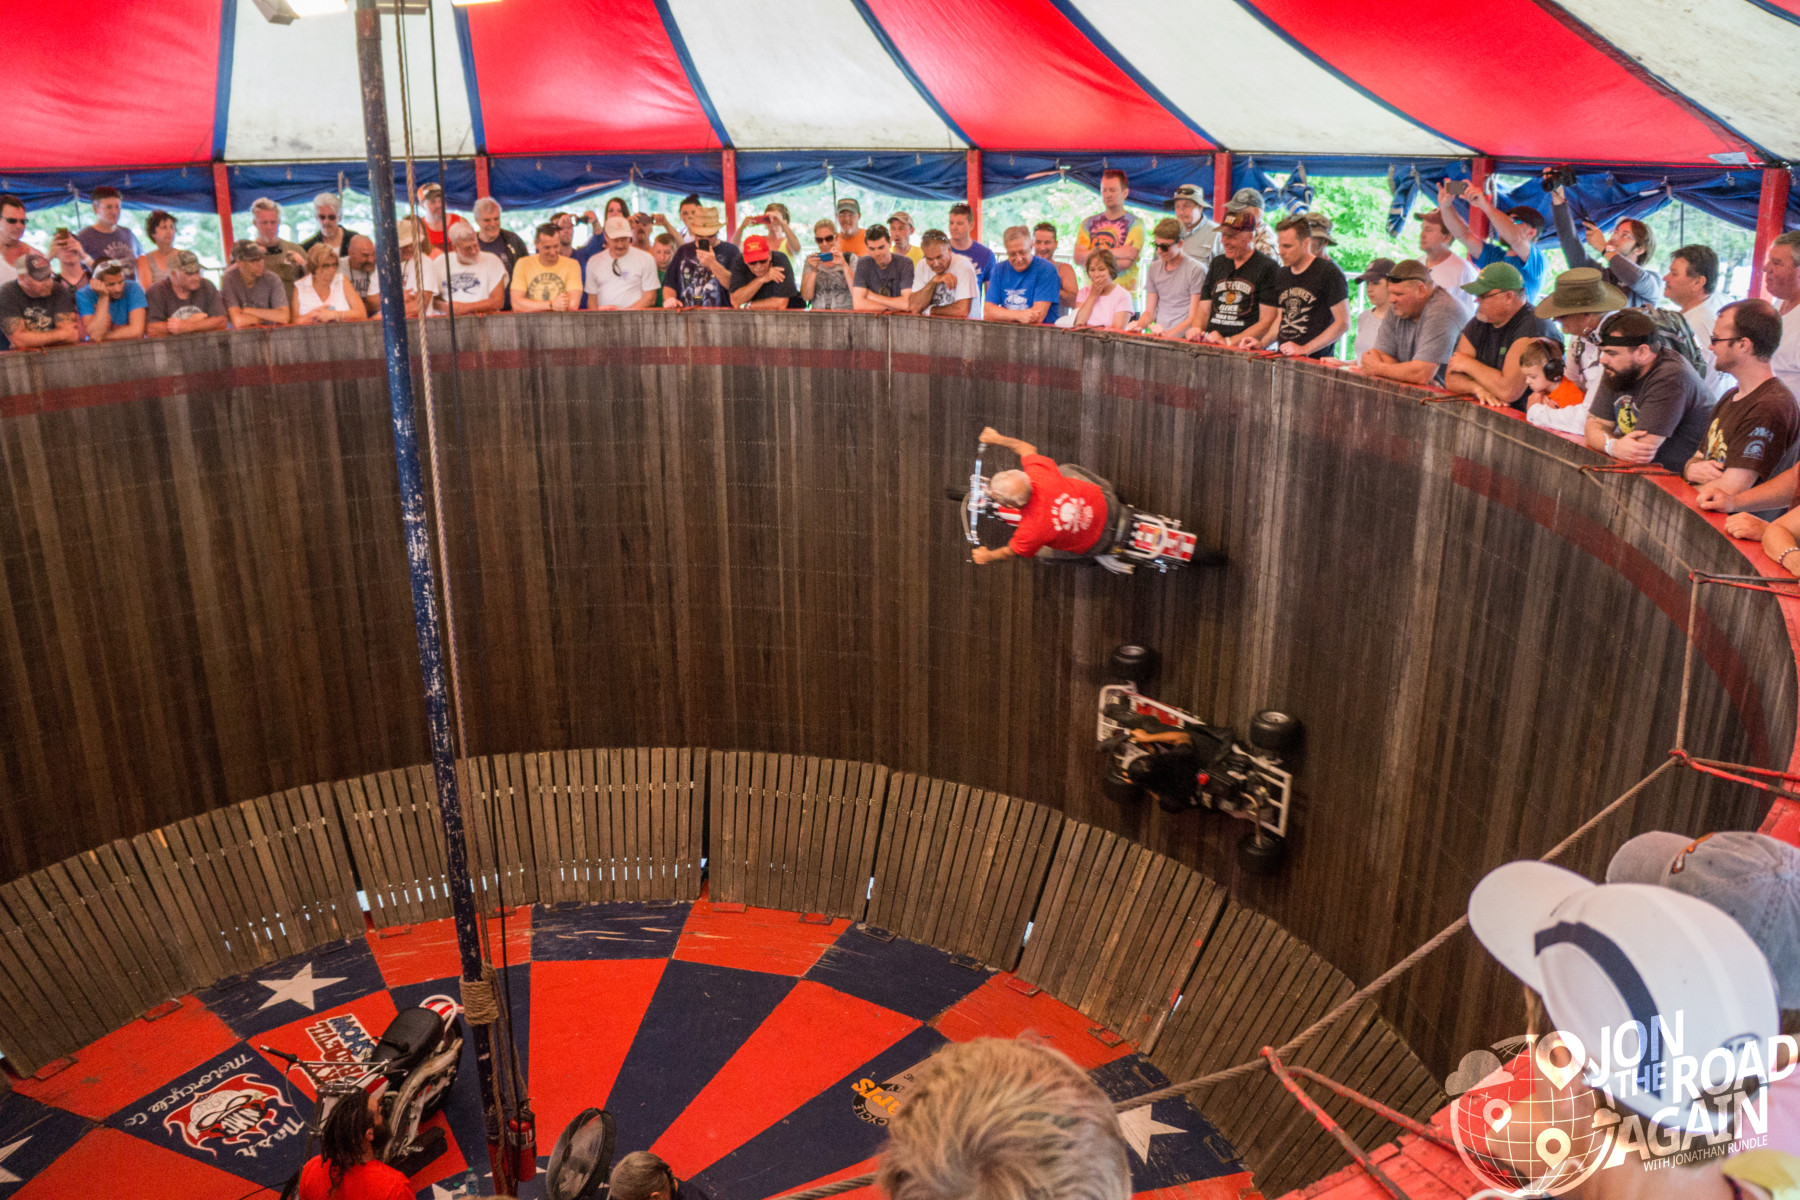 Motorcycle Wall of Death at Vintage motorcycle days